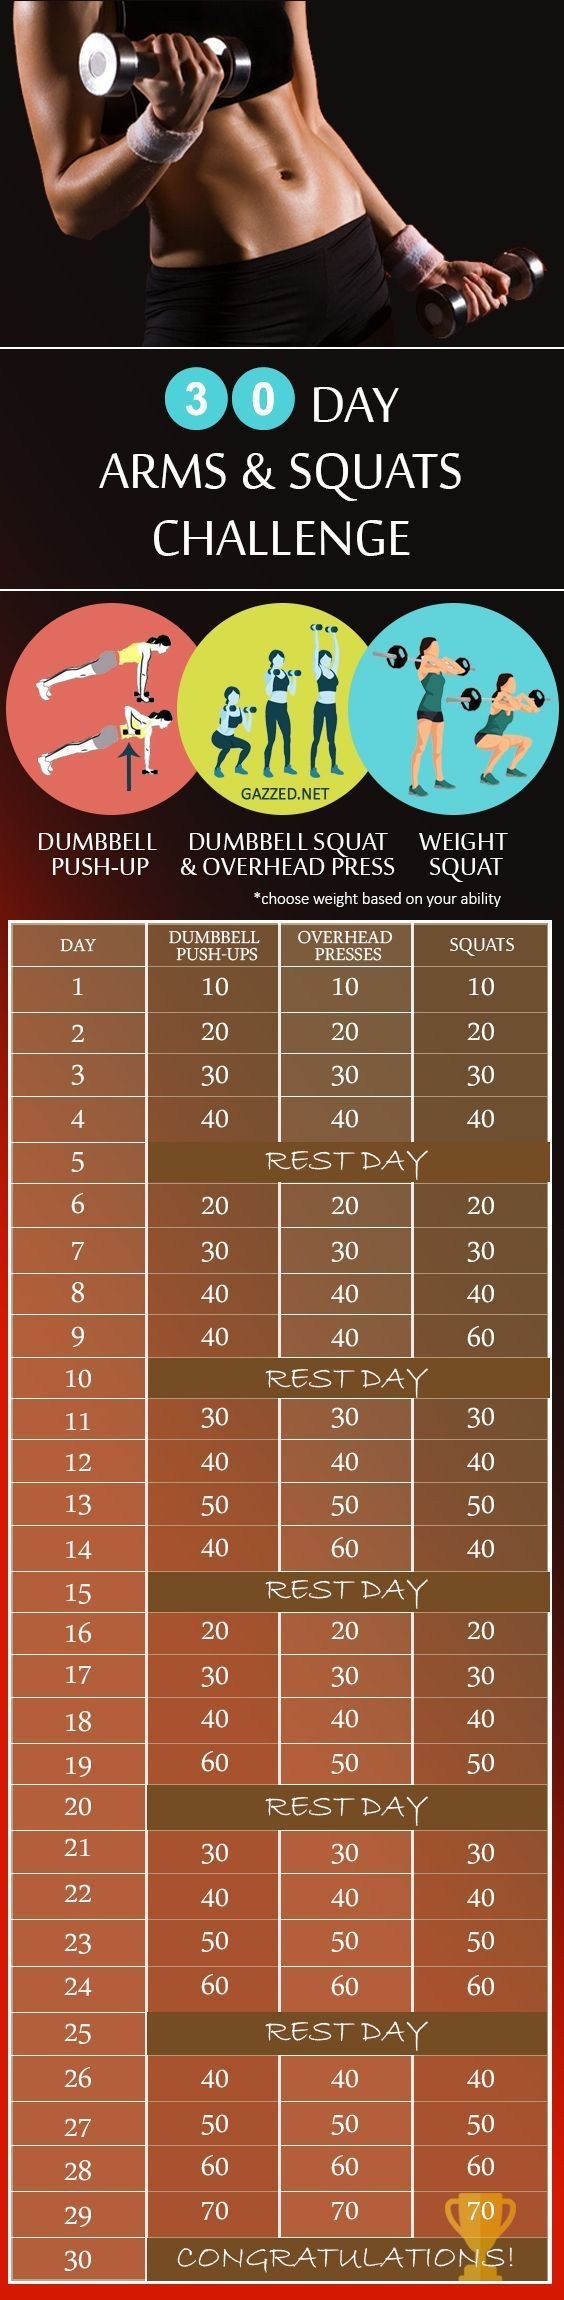 30 Day Weapon and Squat Challenge - Push-up Dumbbells, Squats and Overhead Press - Gazzed 30 Day We